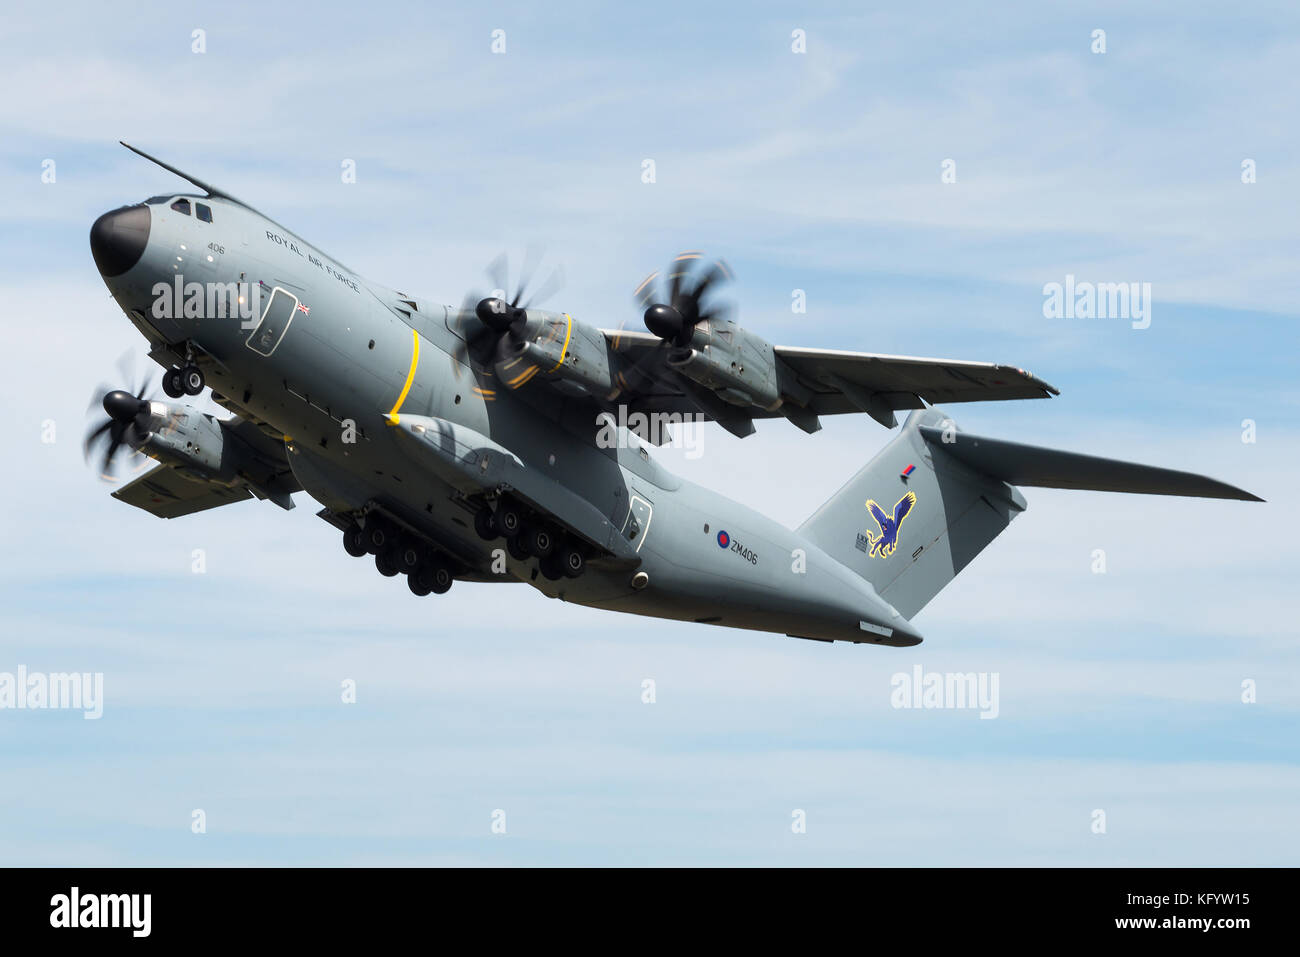 An Airbus A400M military transport aircraft of the 70th Squadron at RAF Brize Norton takes off at RAF Fairford. - Stock Image